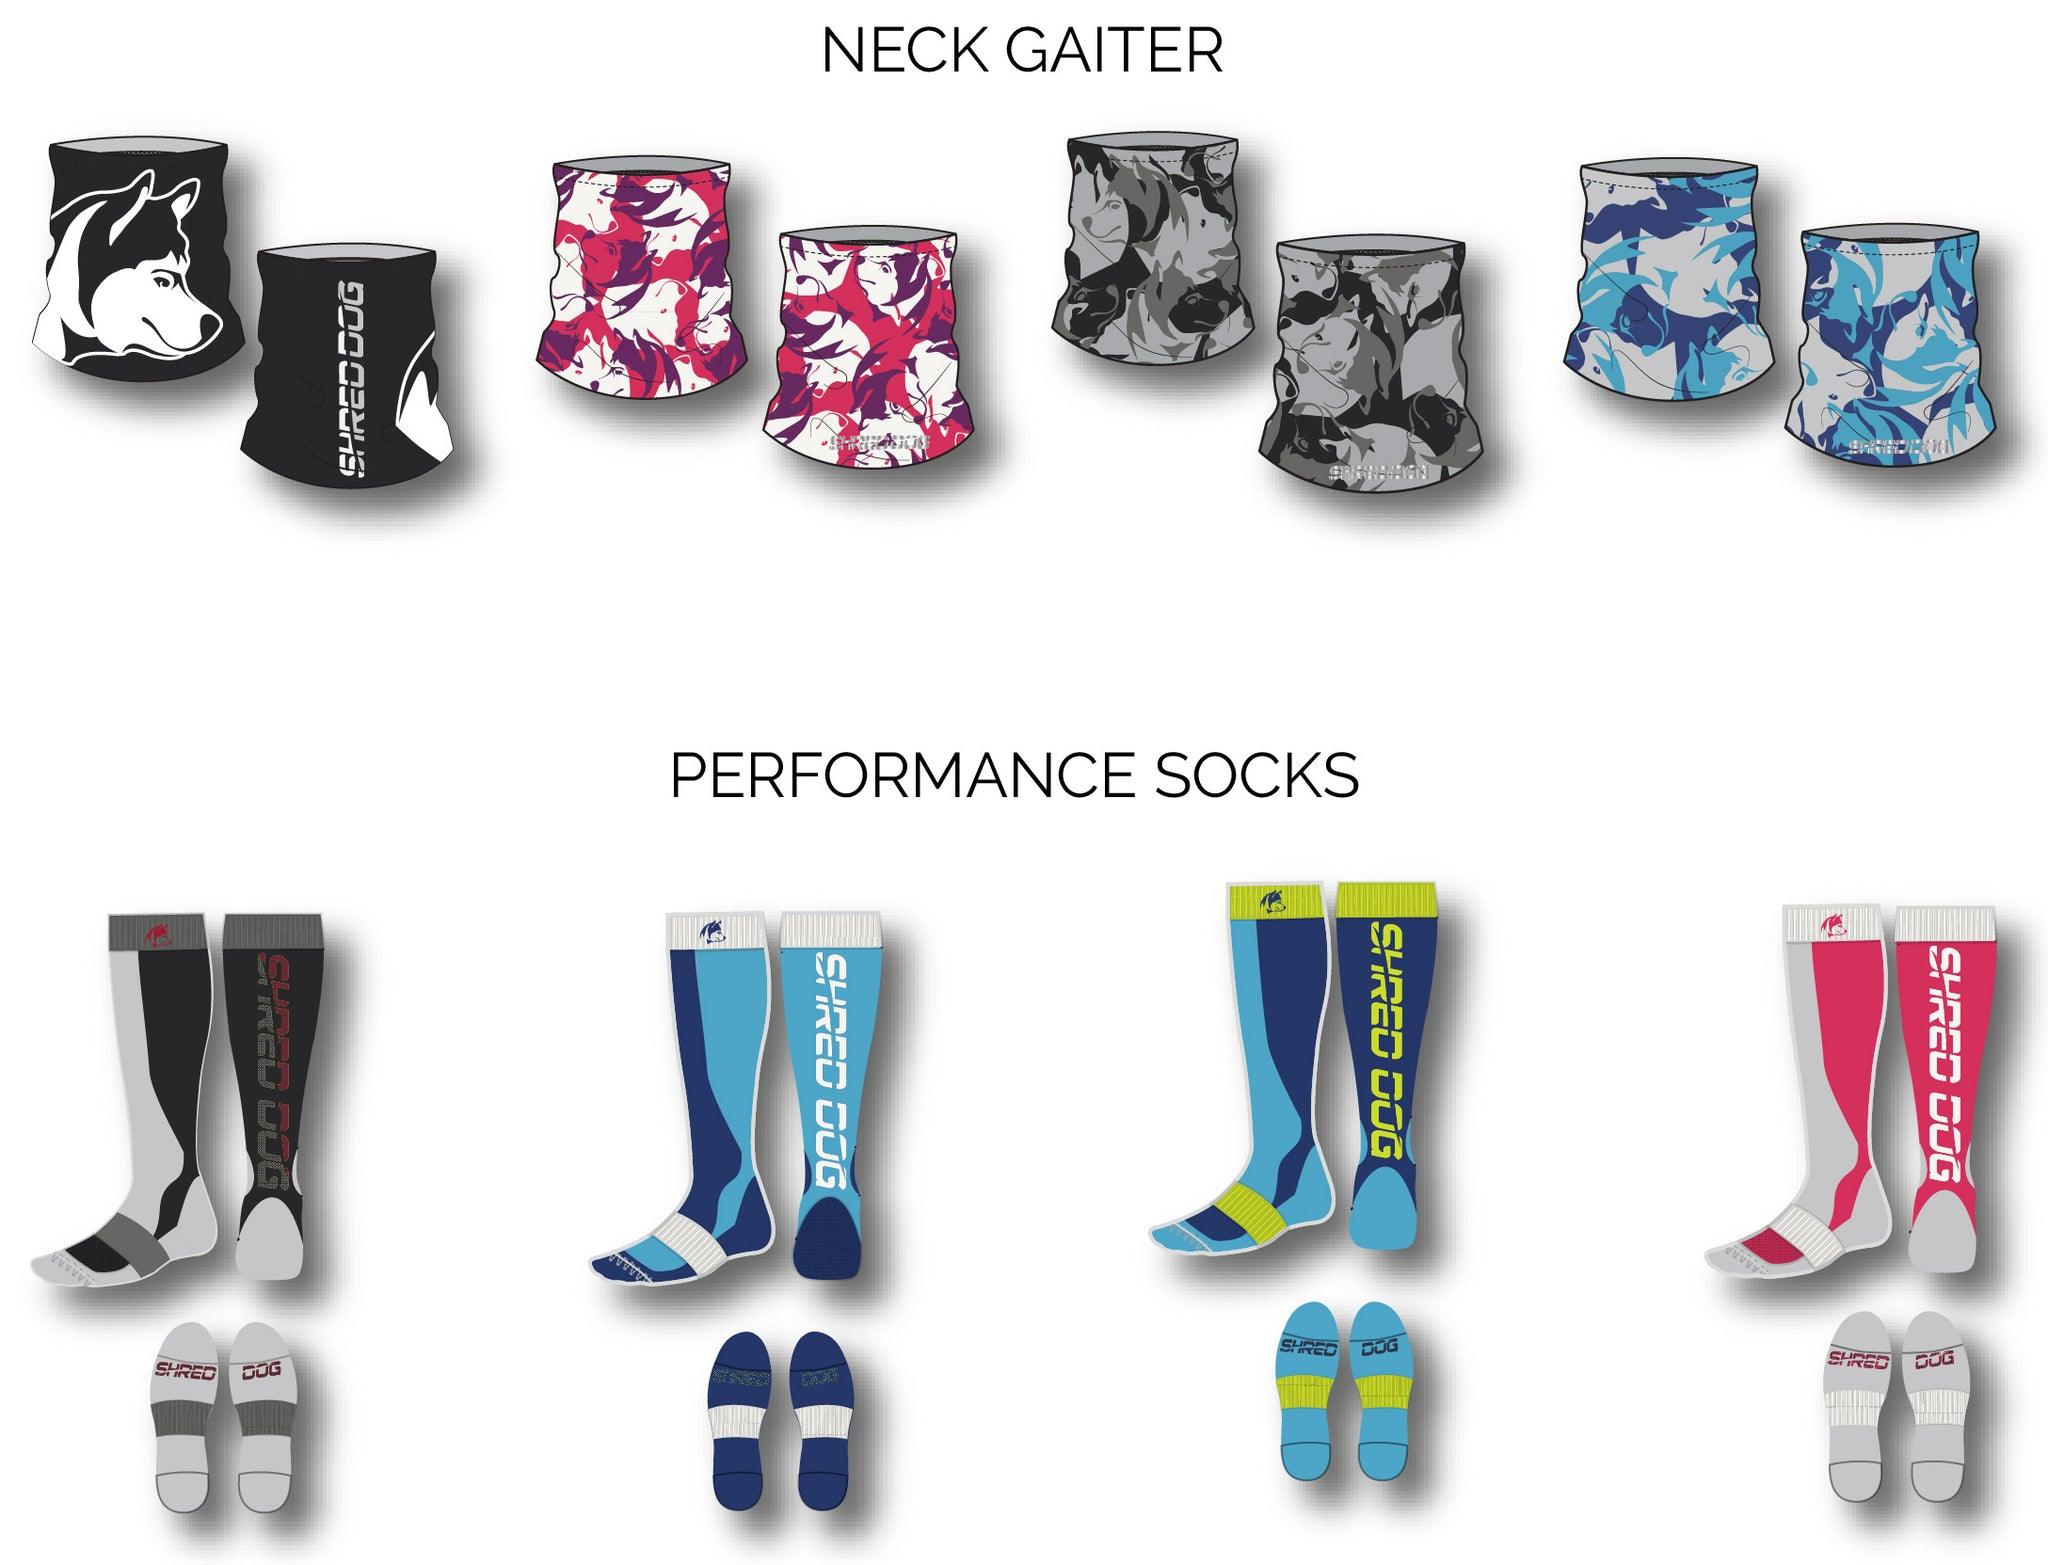 Final Designs Neck Gaiter & Performance Socks